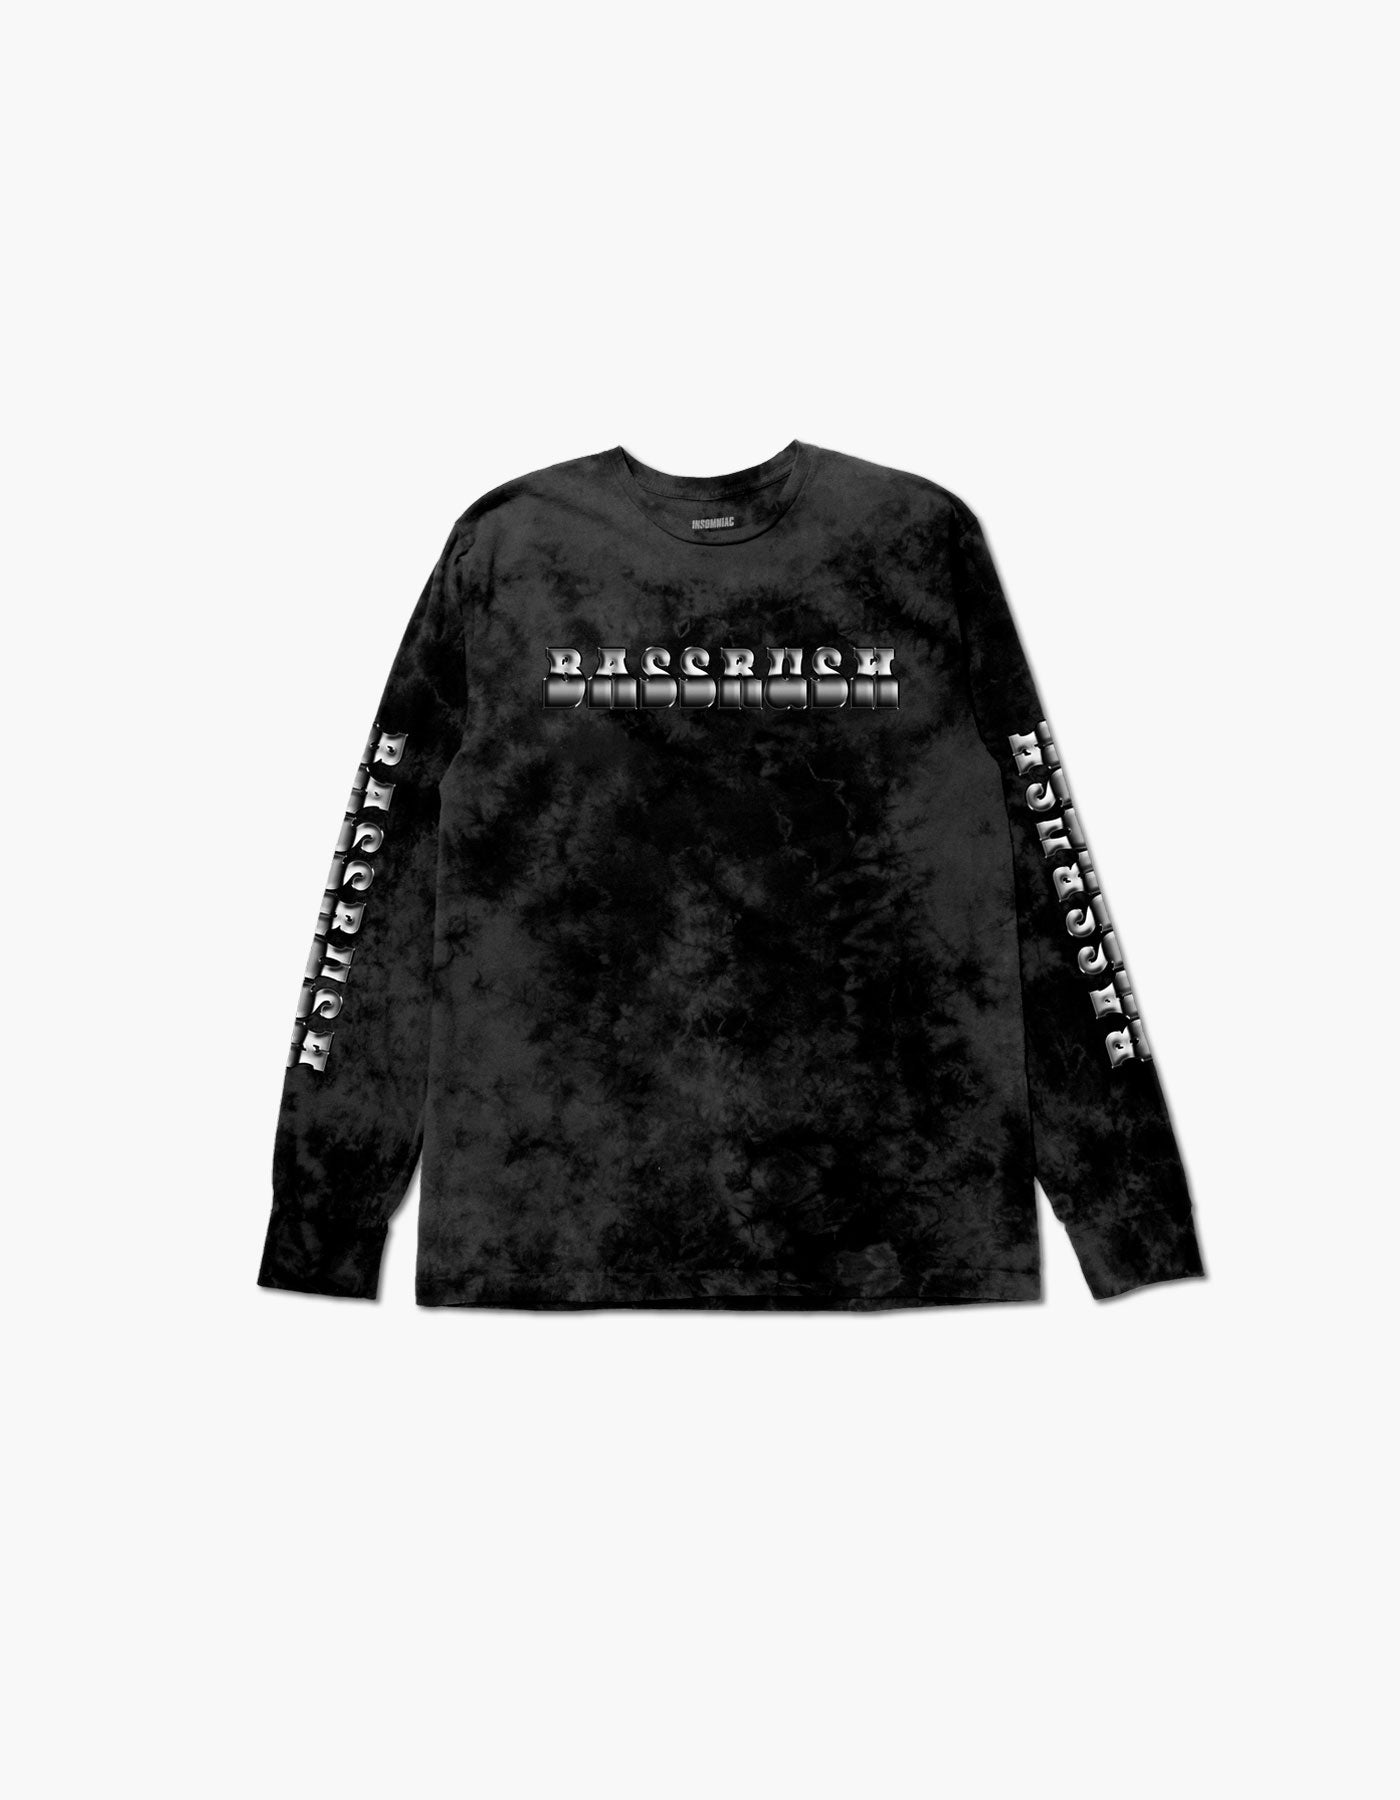 Bassrush Triple Threat Tie Dye L/S Tee Black